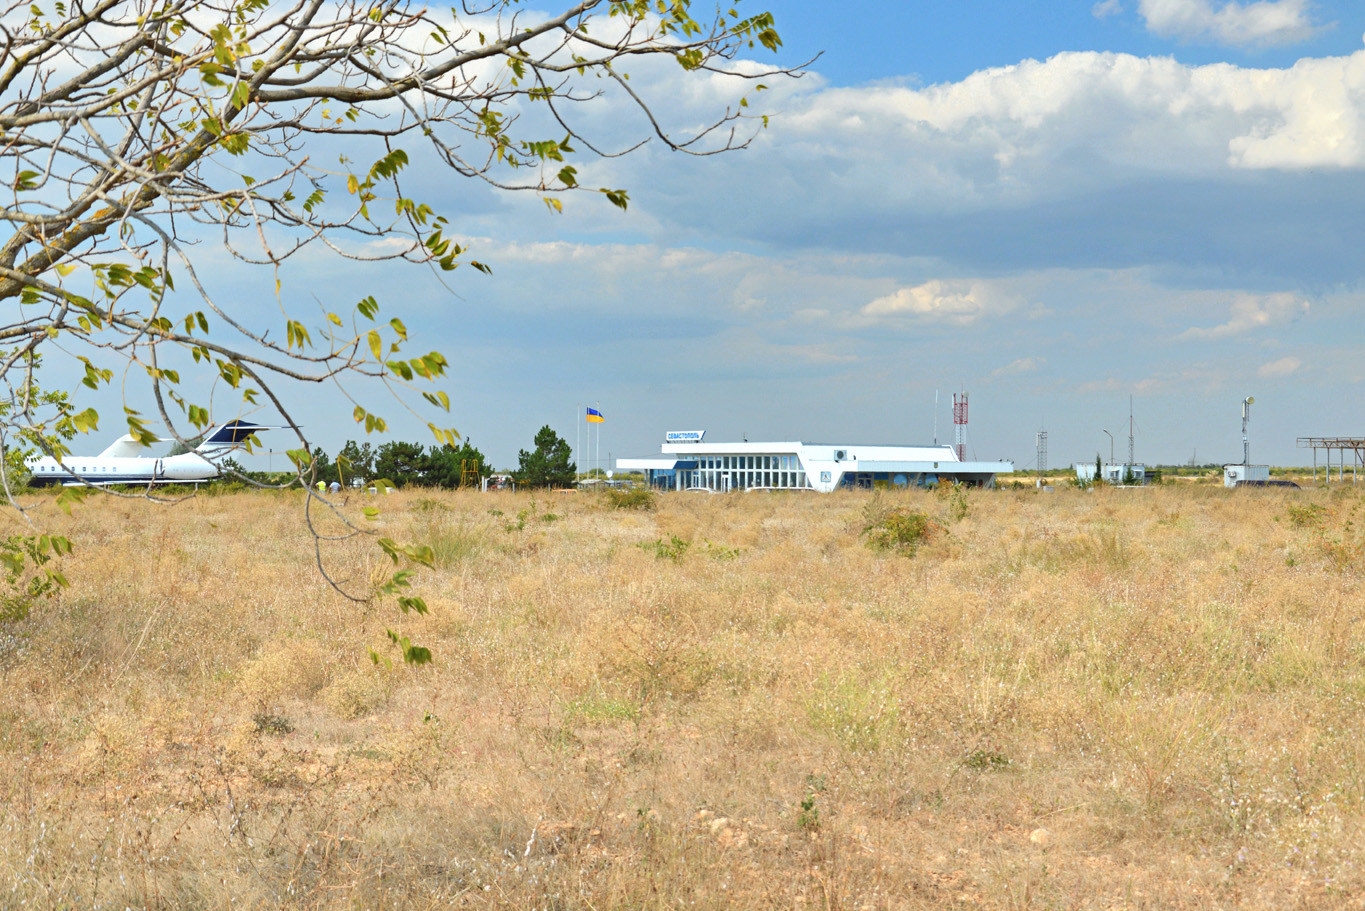 Sevastopol airport - in the middle of nowhere